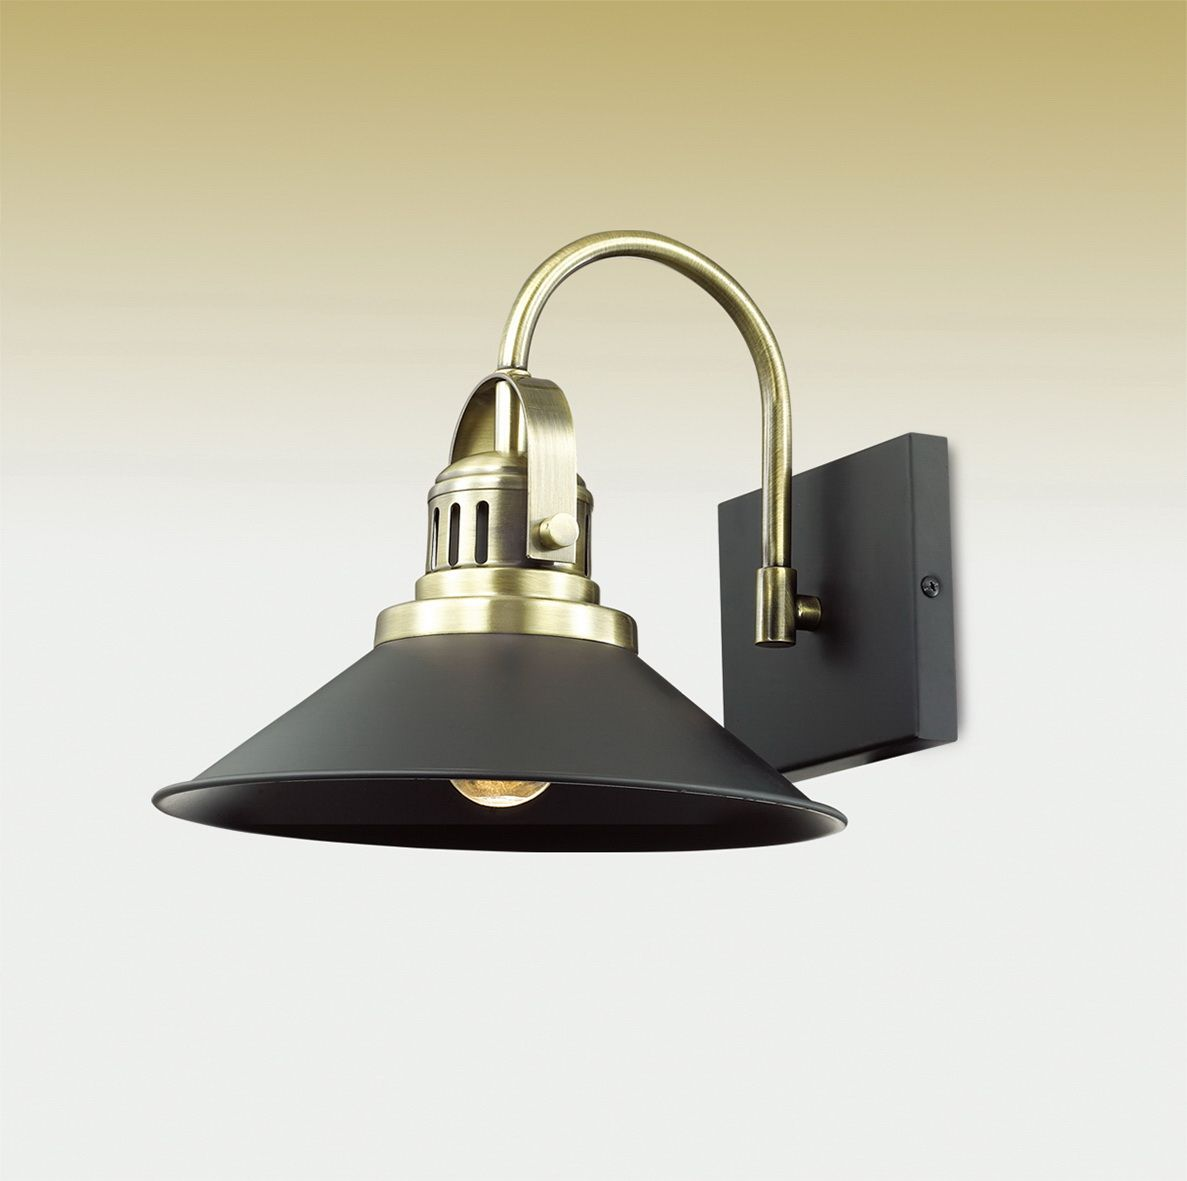 Бра Odeon Light Latura, 1 х E27, 60W. 2898/1W2898/1W